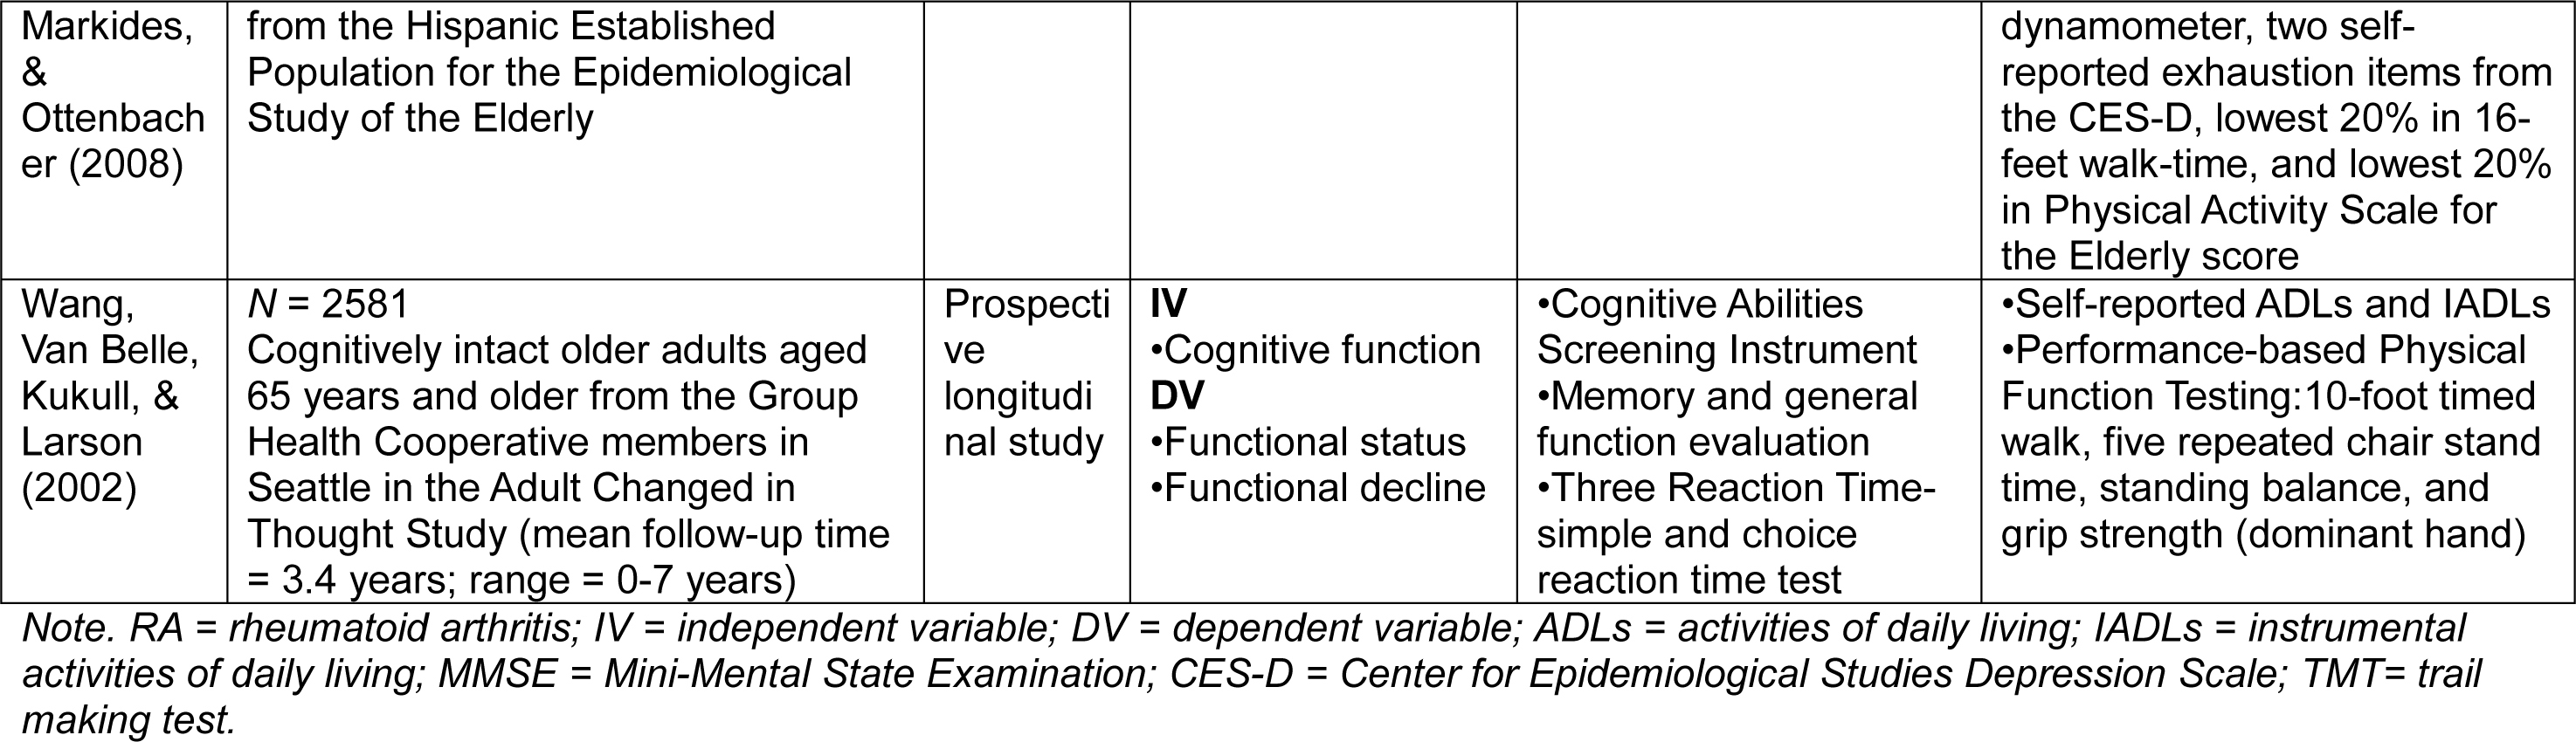 Summary of Literature Review of the Relationship between Cognitive Function and Physical Function in Older Adults with RA